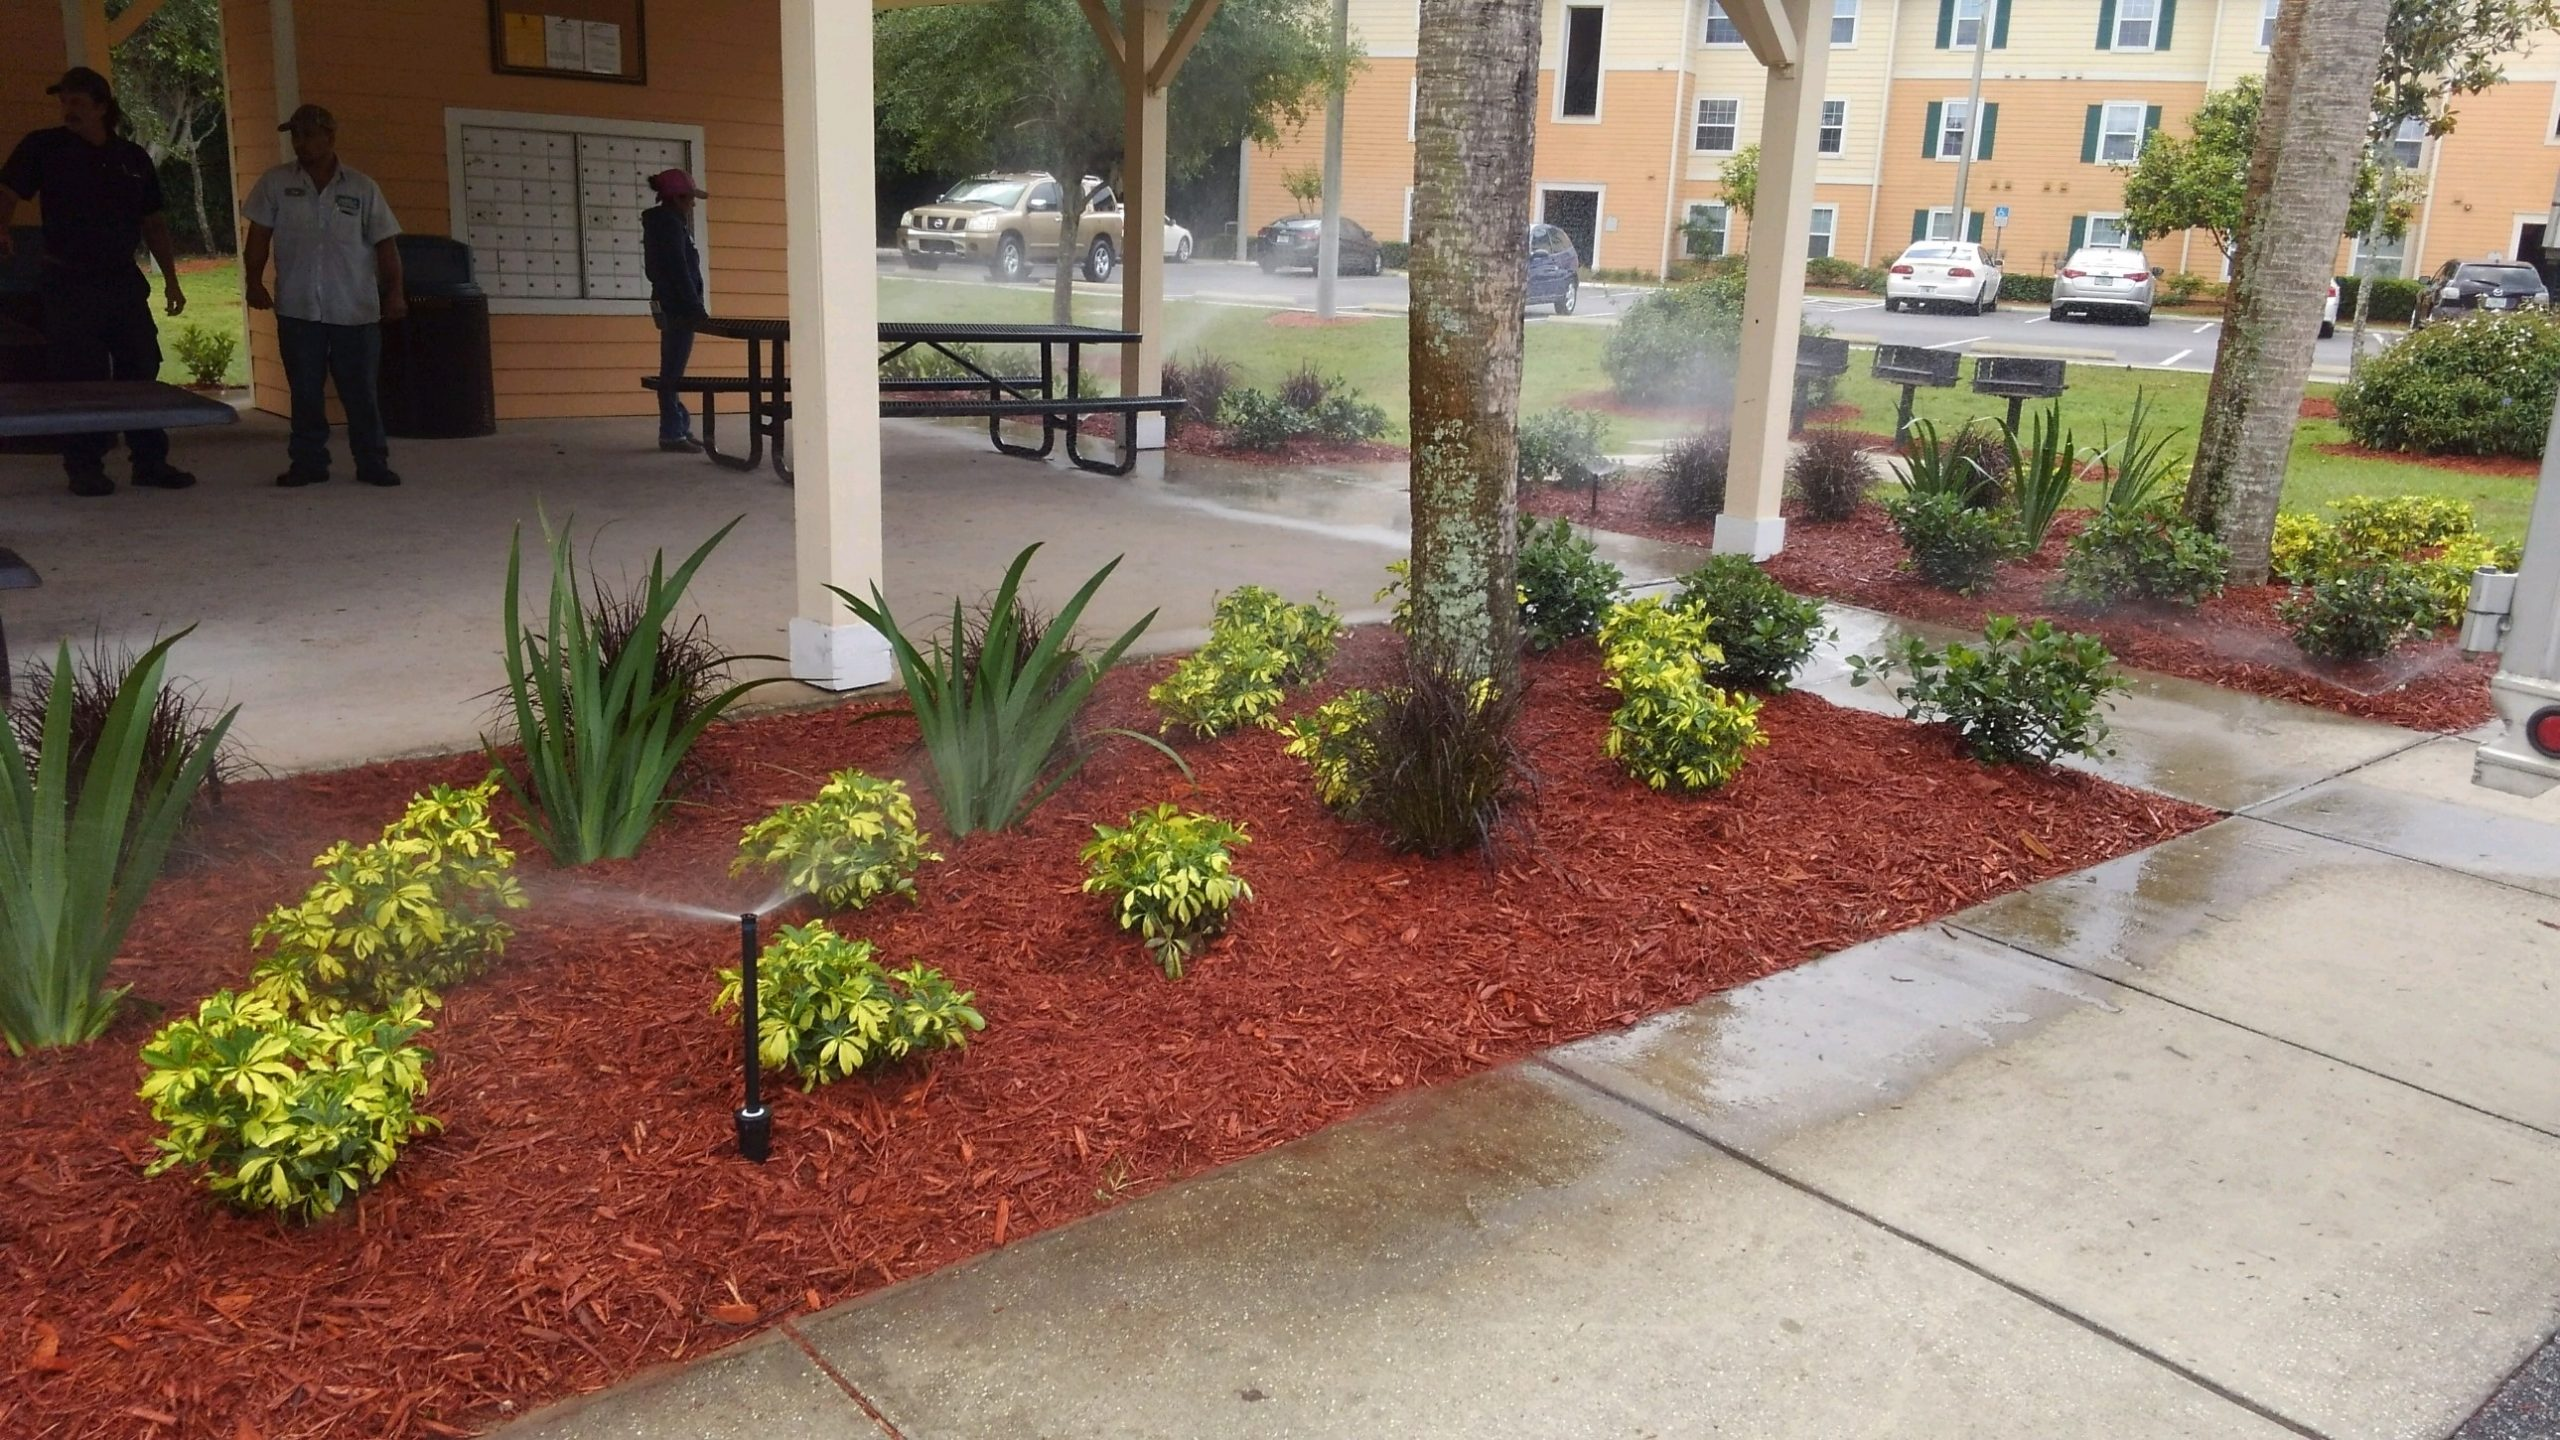 Lawn Care And Landscape Gallery - Evolve Professional intended for Landscape And Yard Care